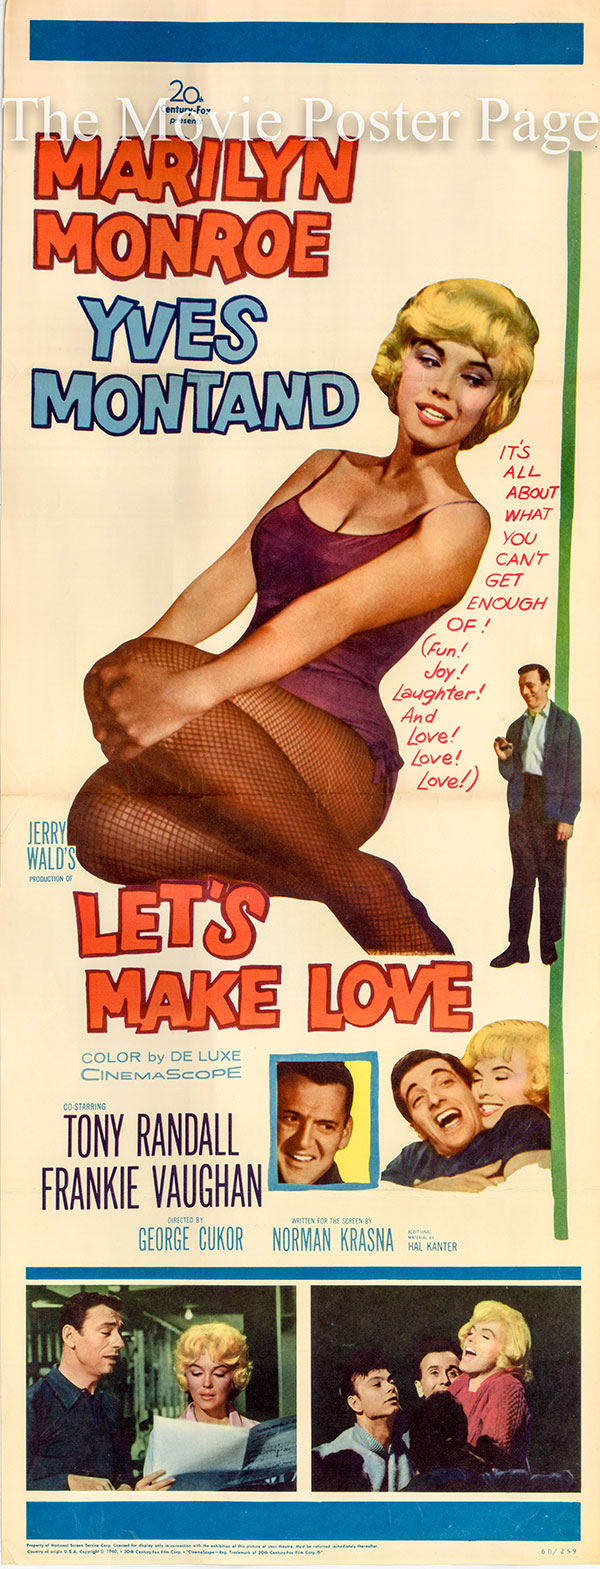 Pictured is the US insert promotional poster for the 1960 George Cukor film Lets Make Love starring Marilyn Monroe.